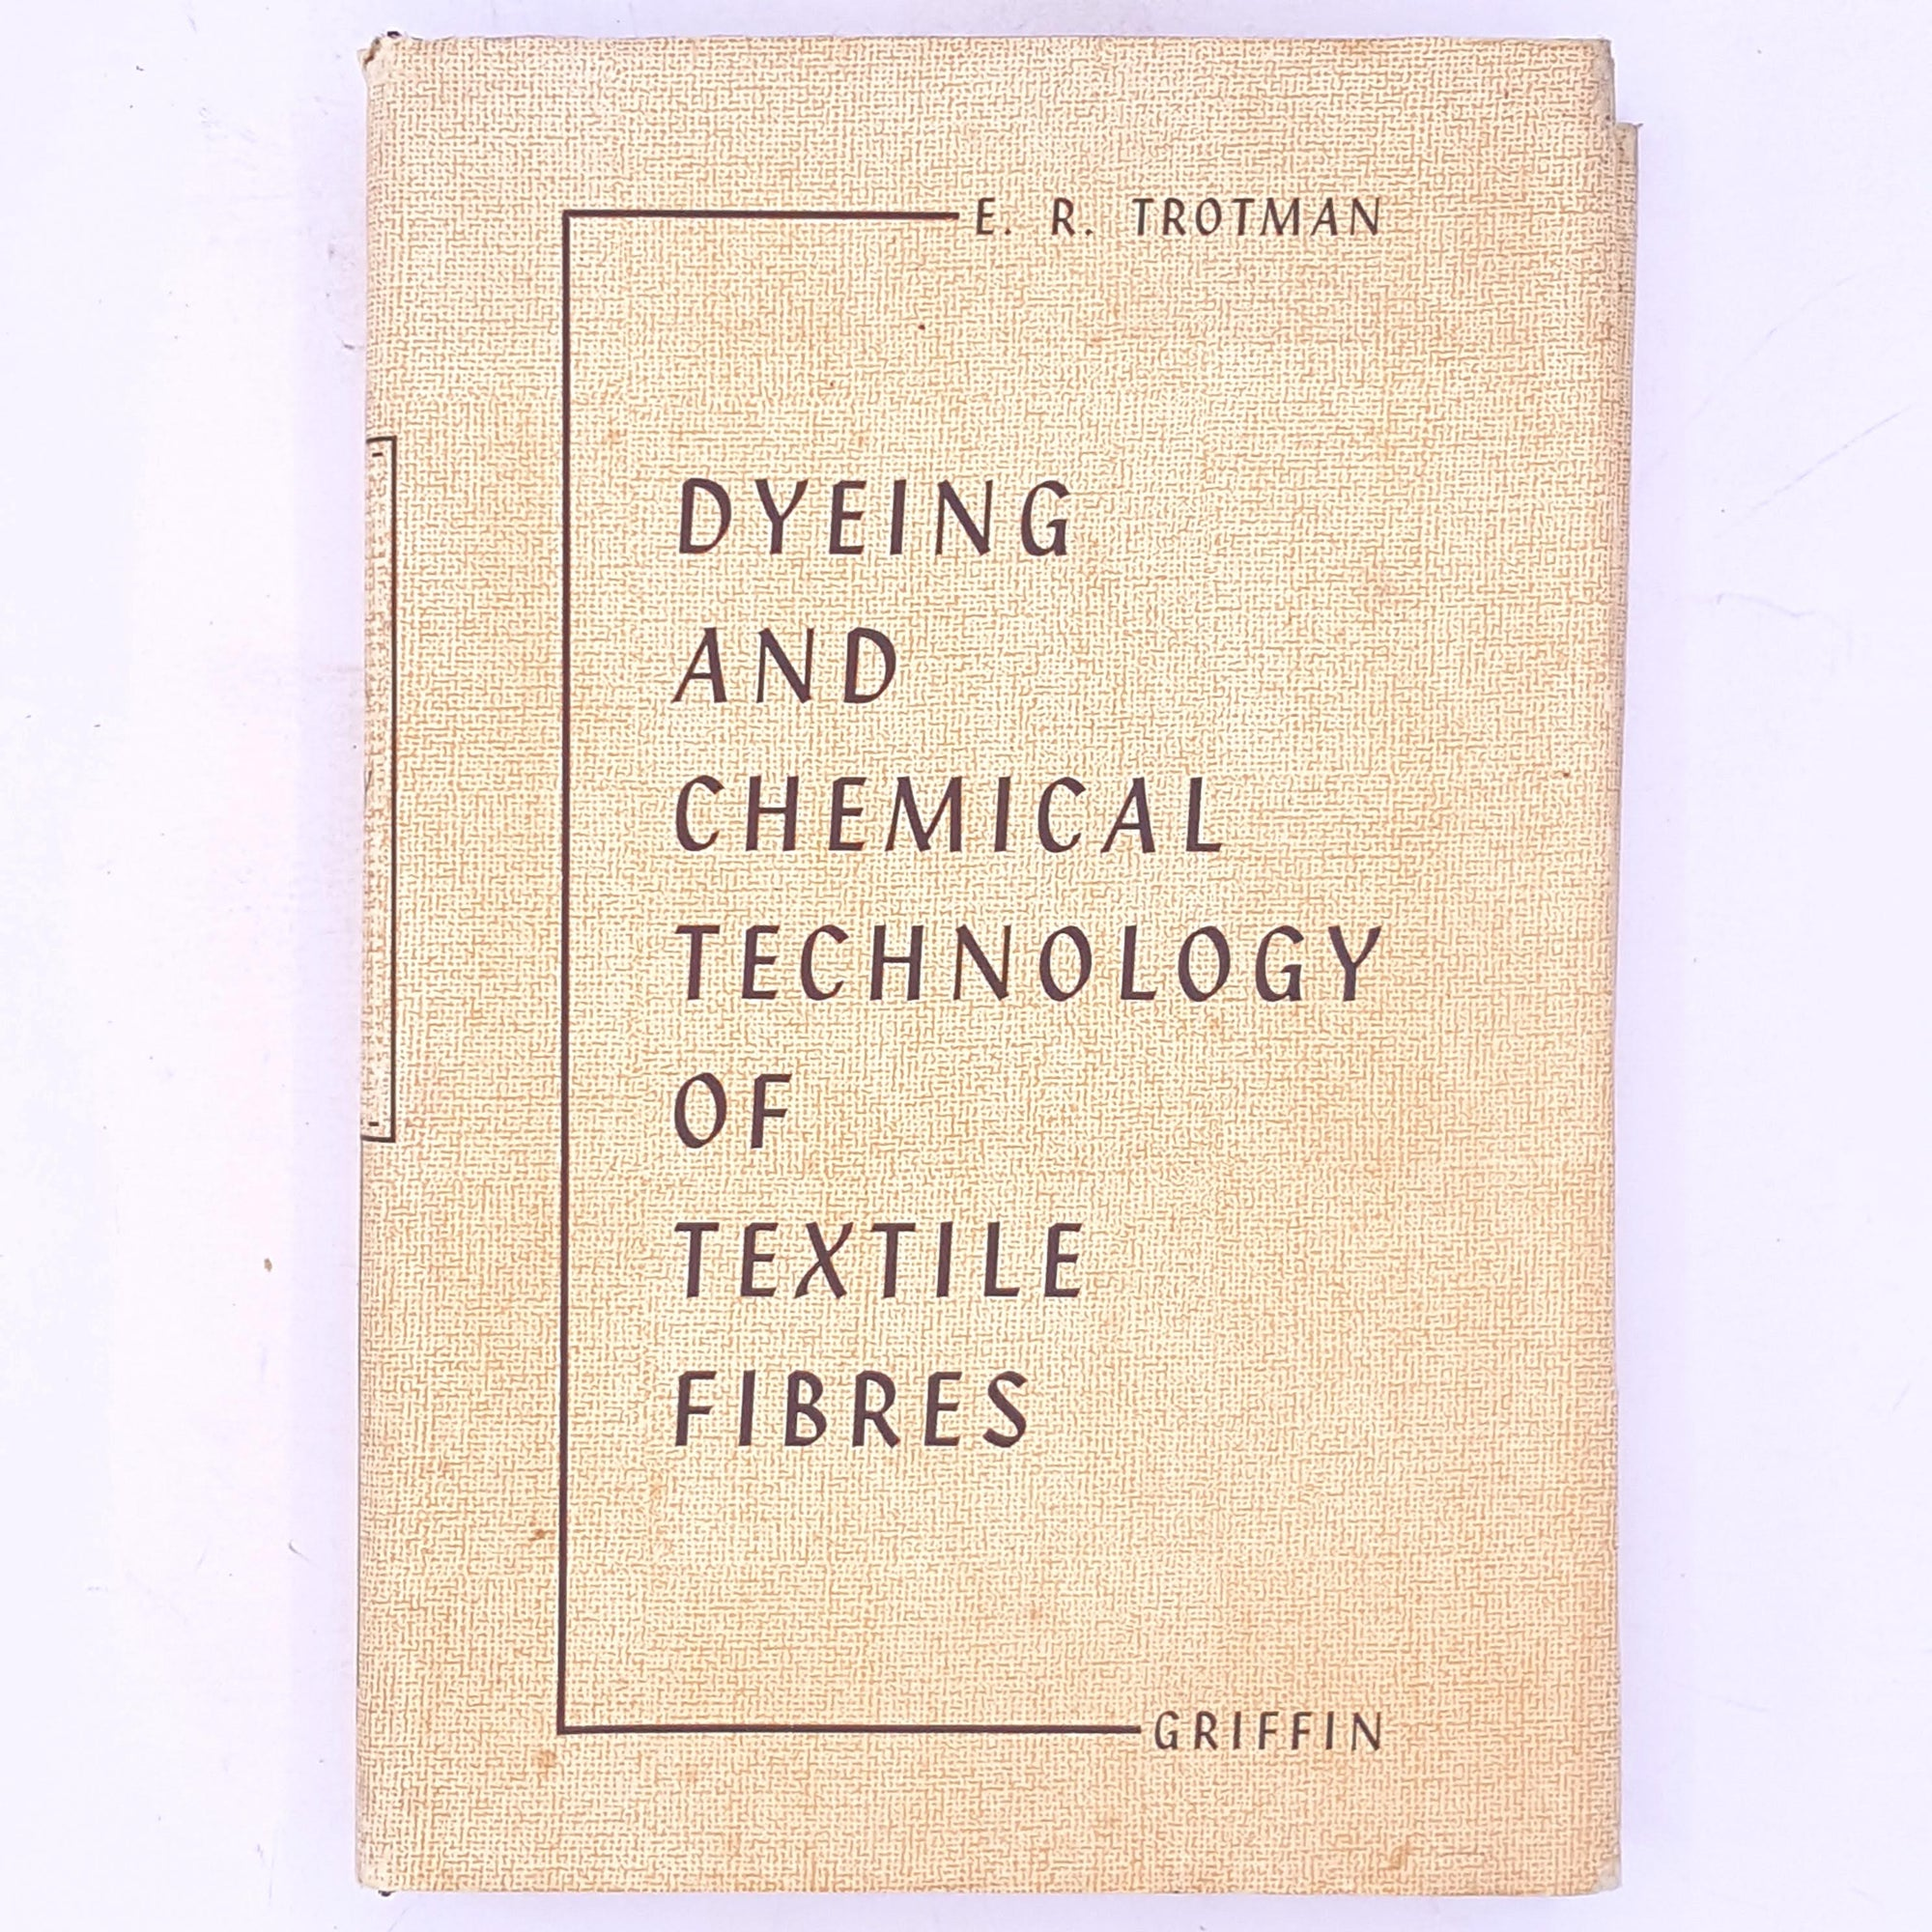 Dyeing and Chemical Technology of Textile Fibres by E.R. Trotman